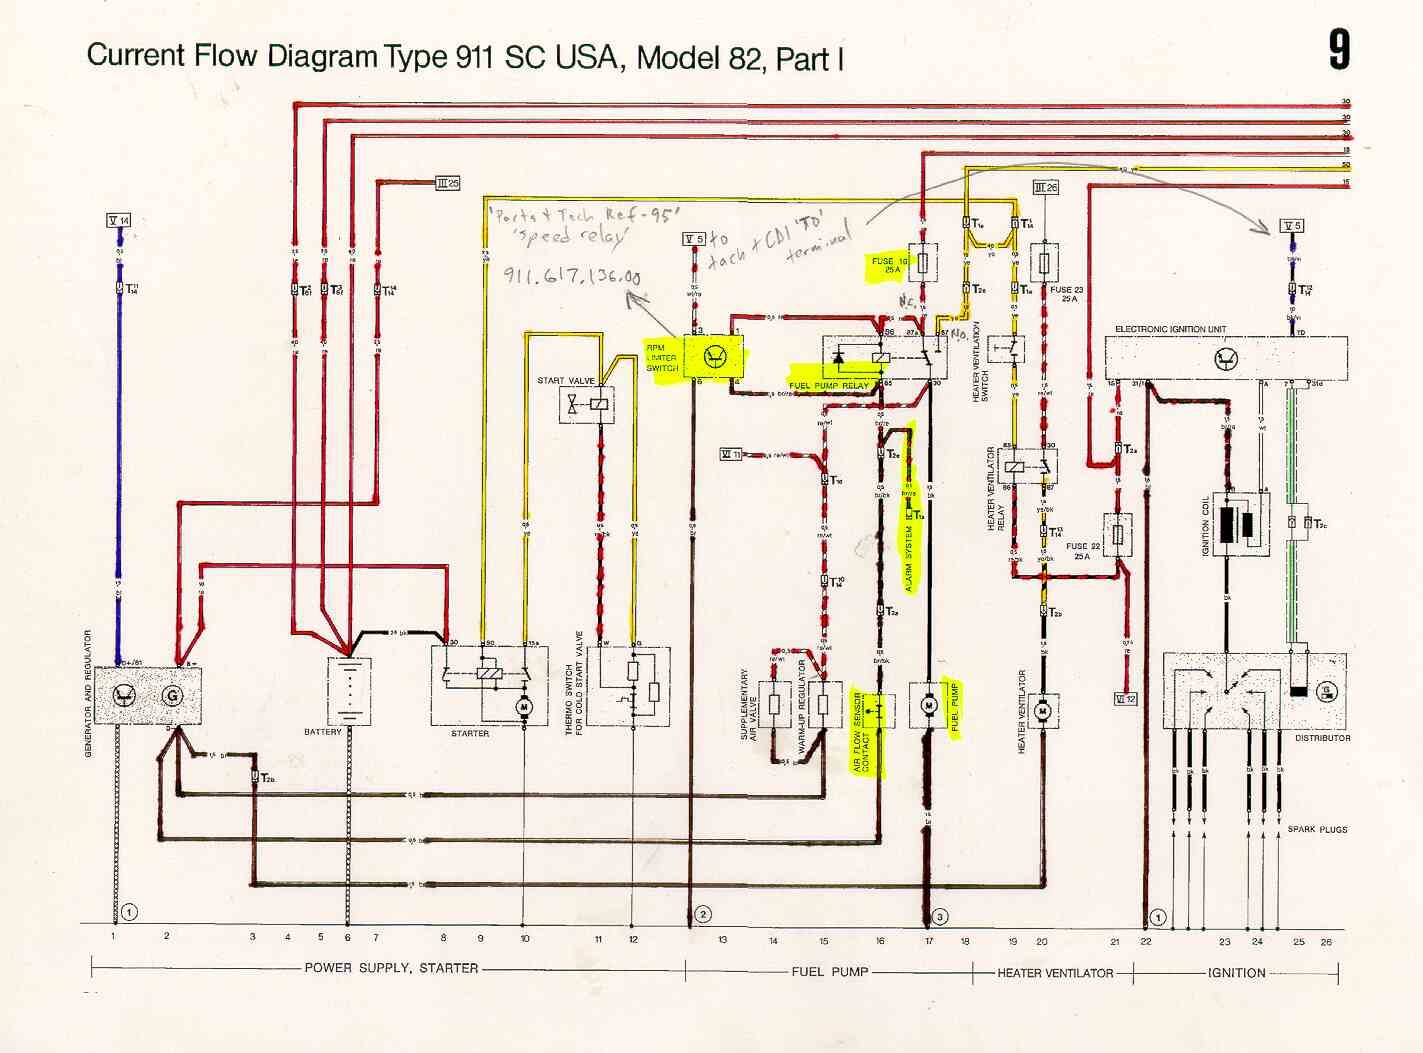 porsche 911 wiring diagram Download-Porsche 911 Wiring Diagram Inspirational thermo Time Switch Wiring Pelican Parts Technical Bbs 17-o